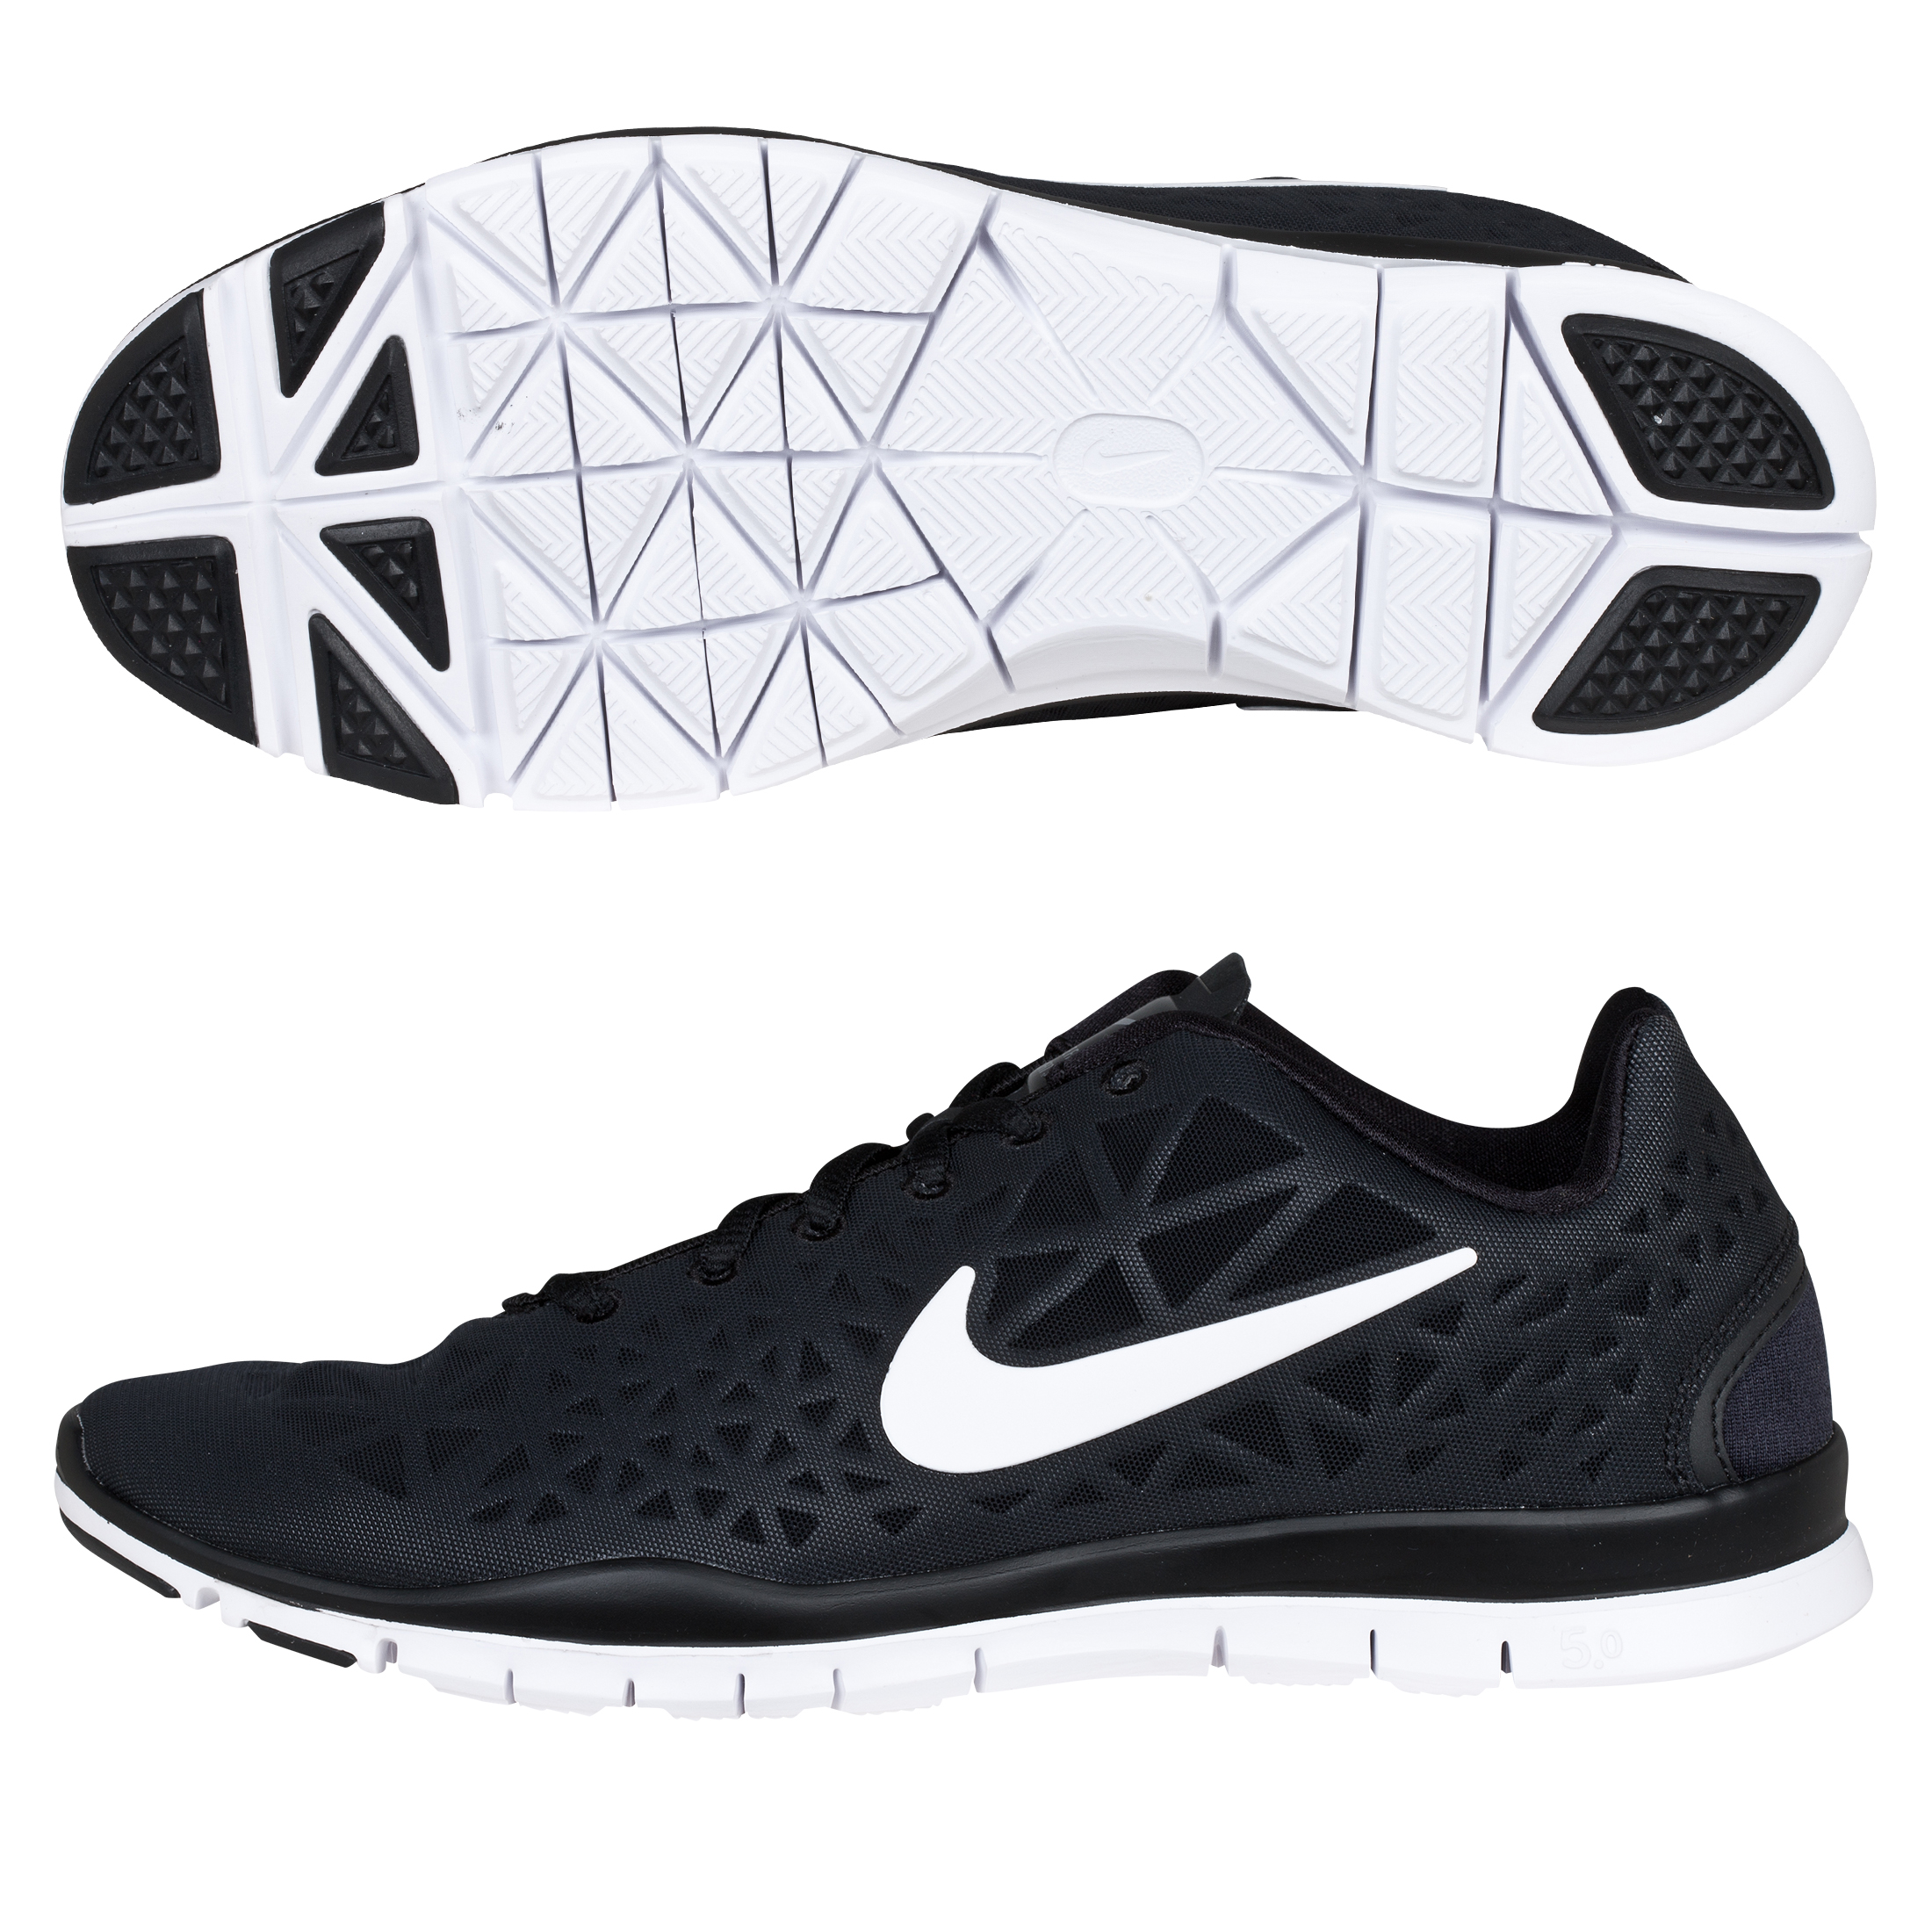 Nike Free Tr Fit 3 - Black/White-Anthracite - Womens